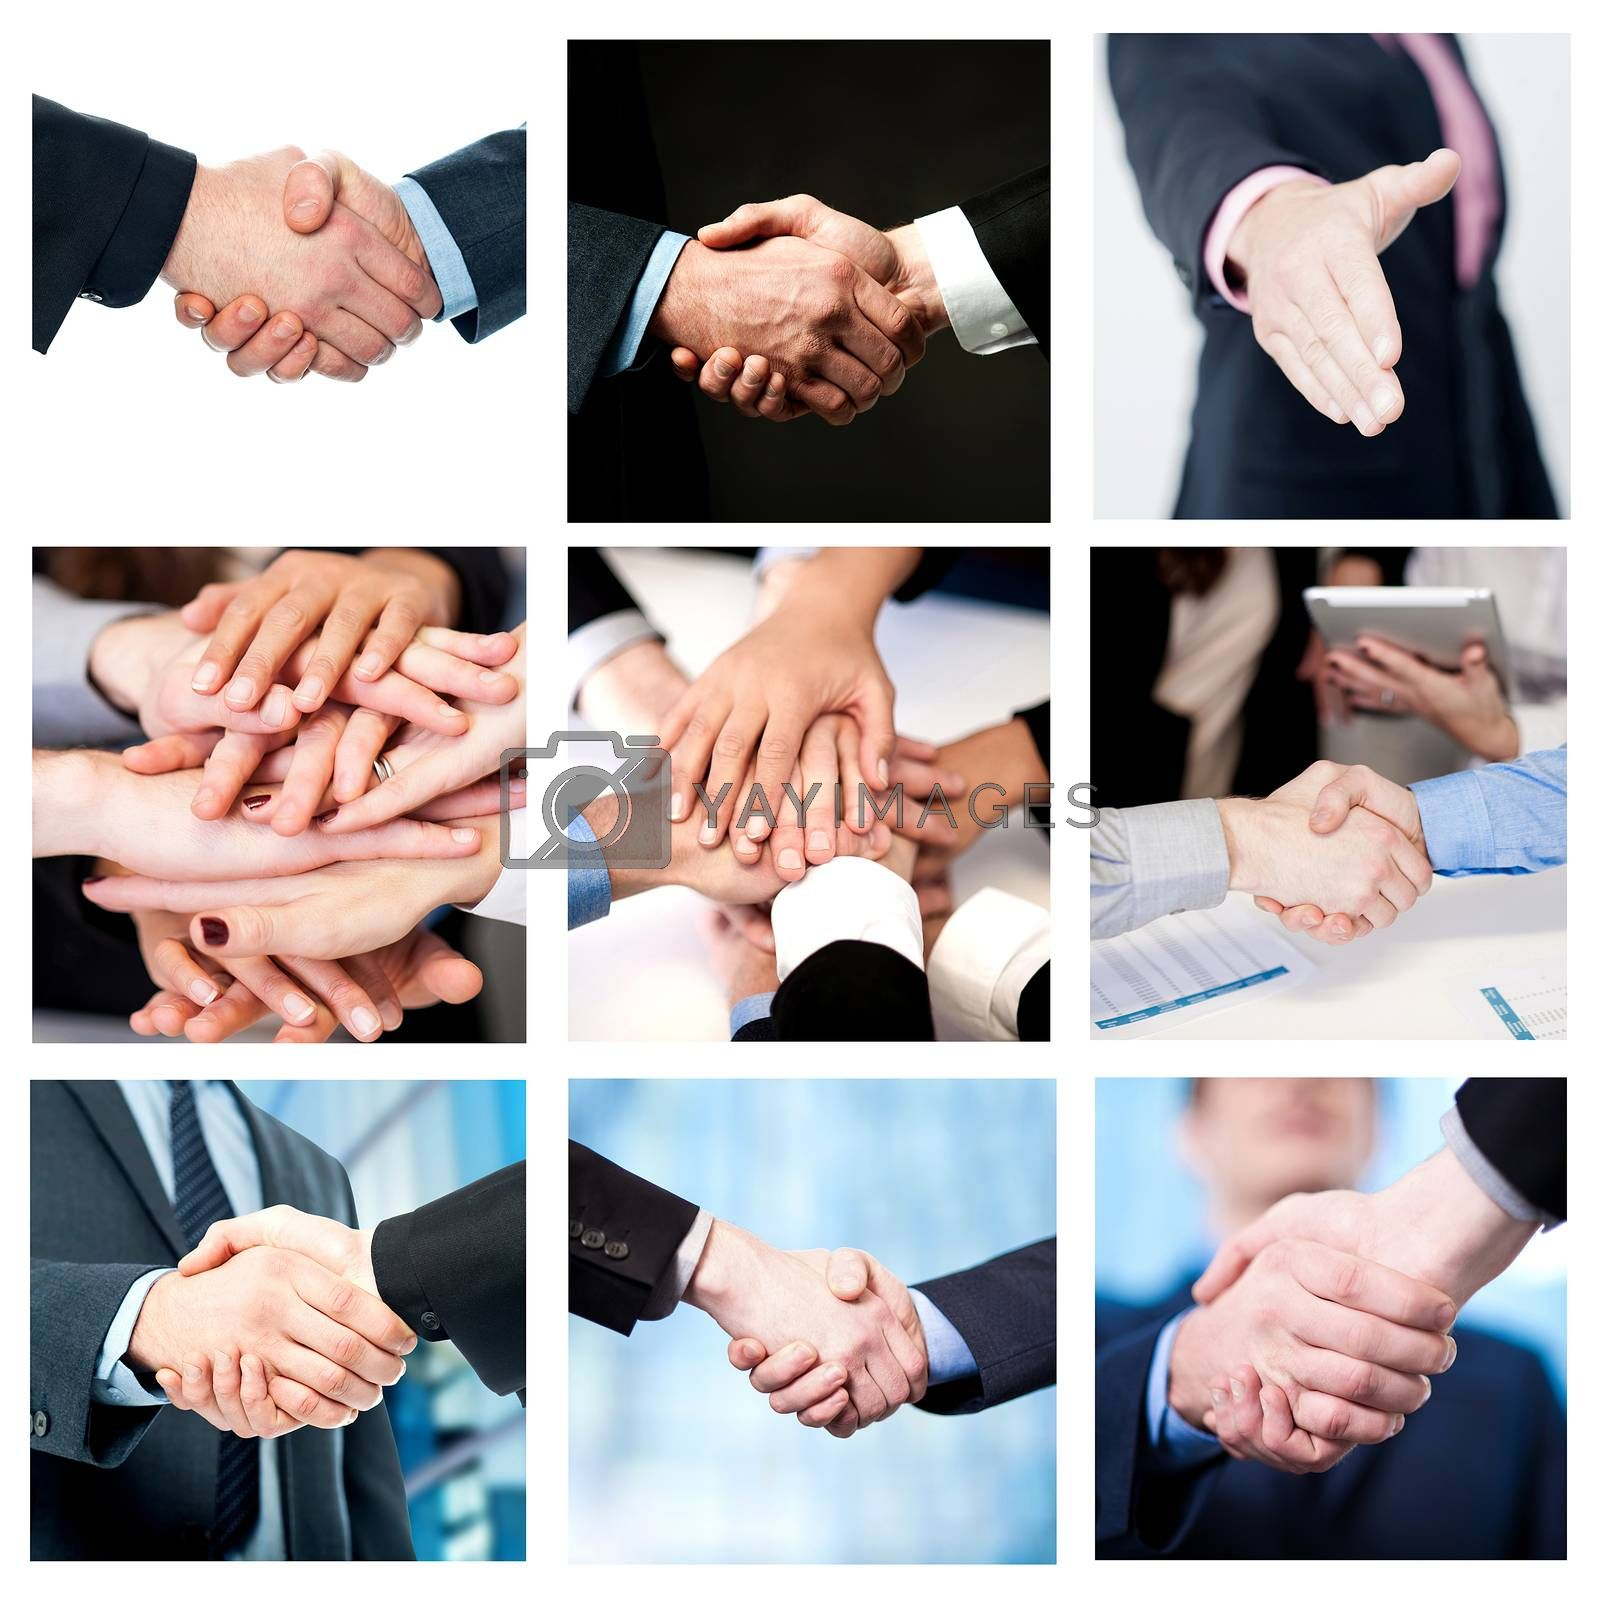 Collage of business deals and team work efforts